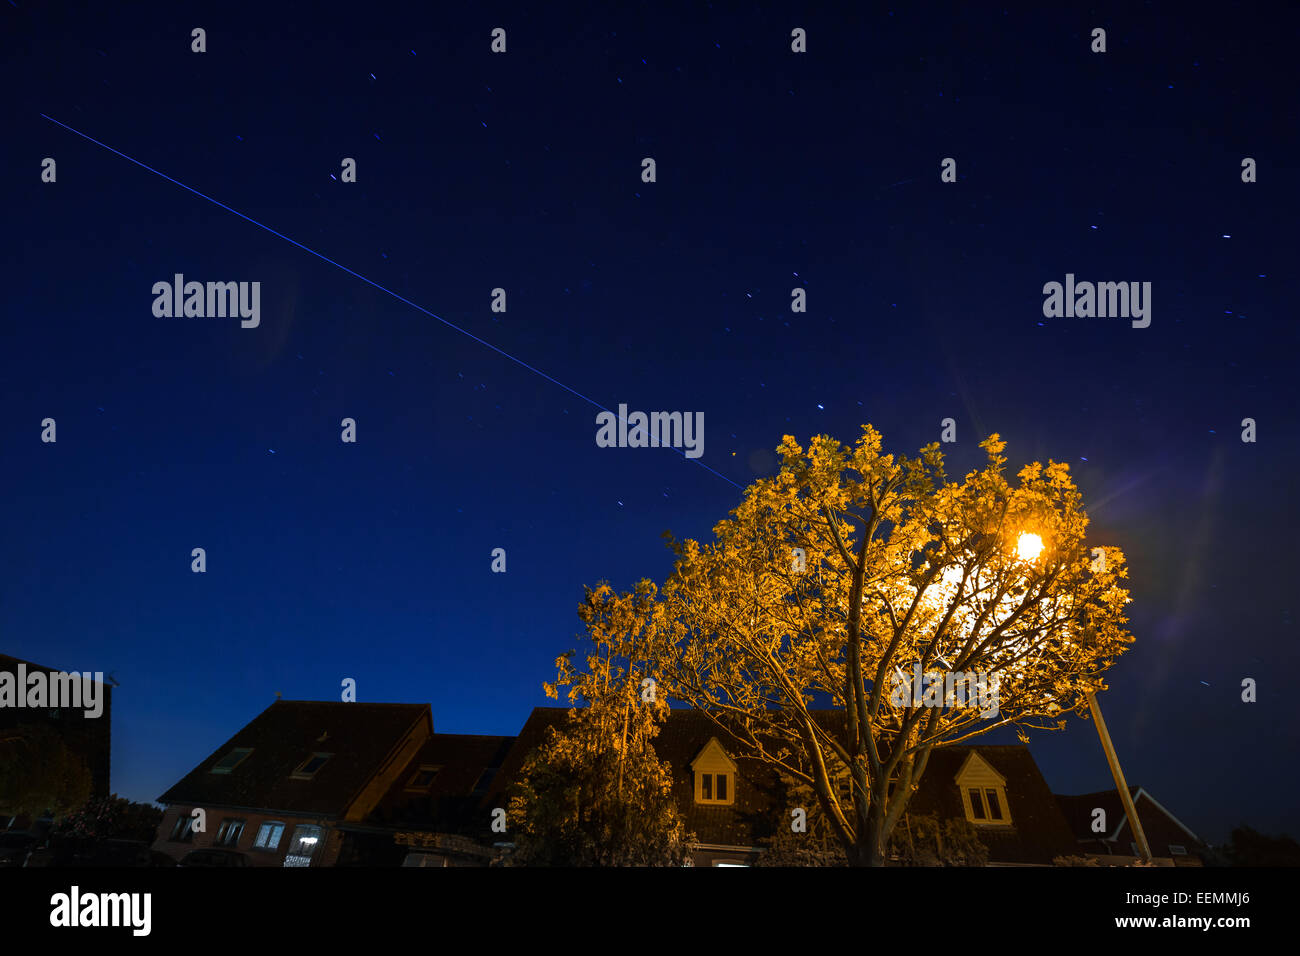 A long exposure of the International Space Station (ISS) and its track overhead. - Stock Image